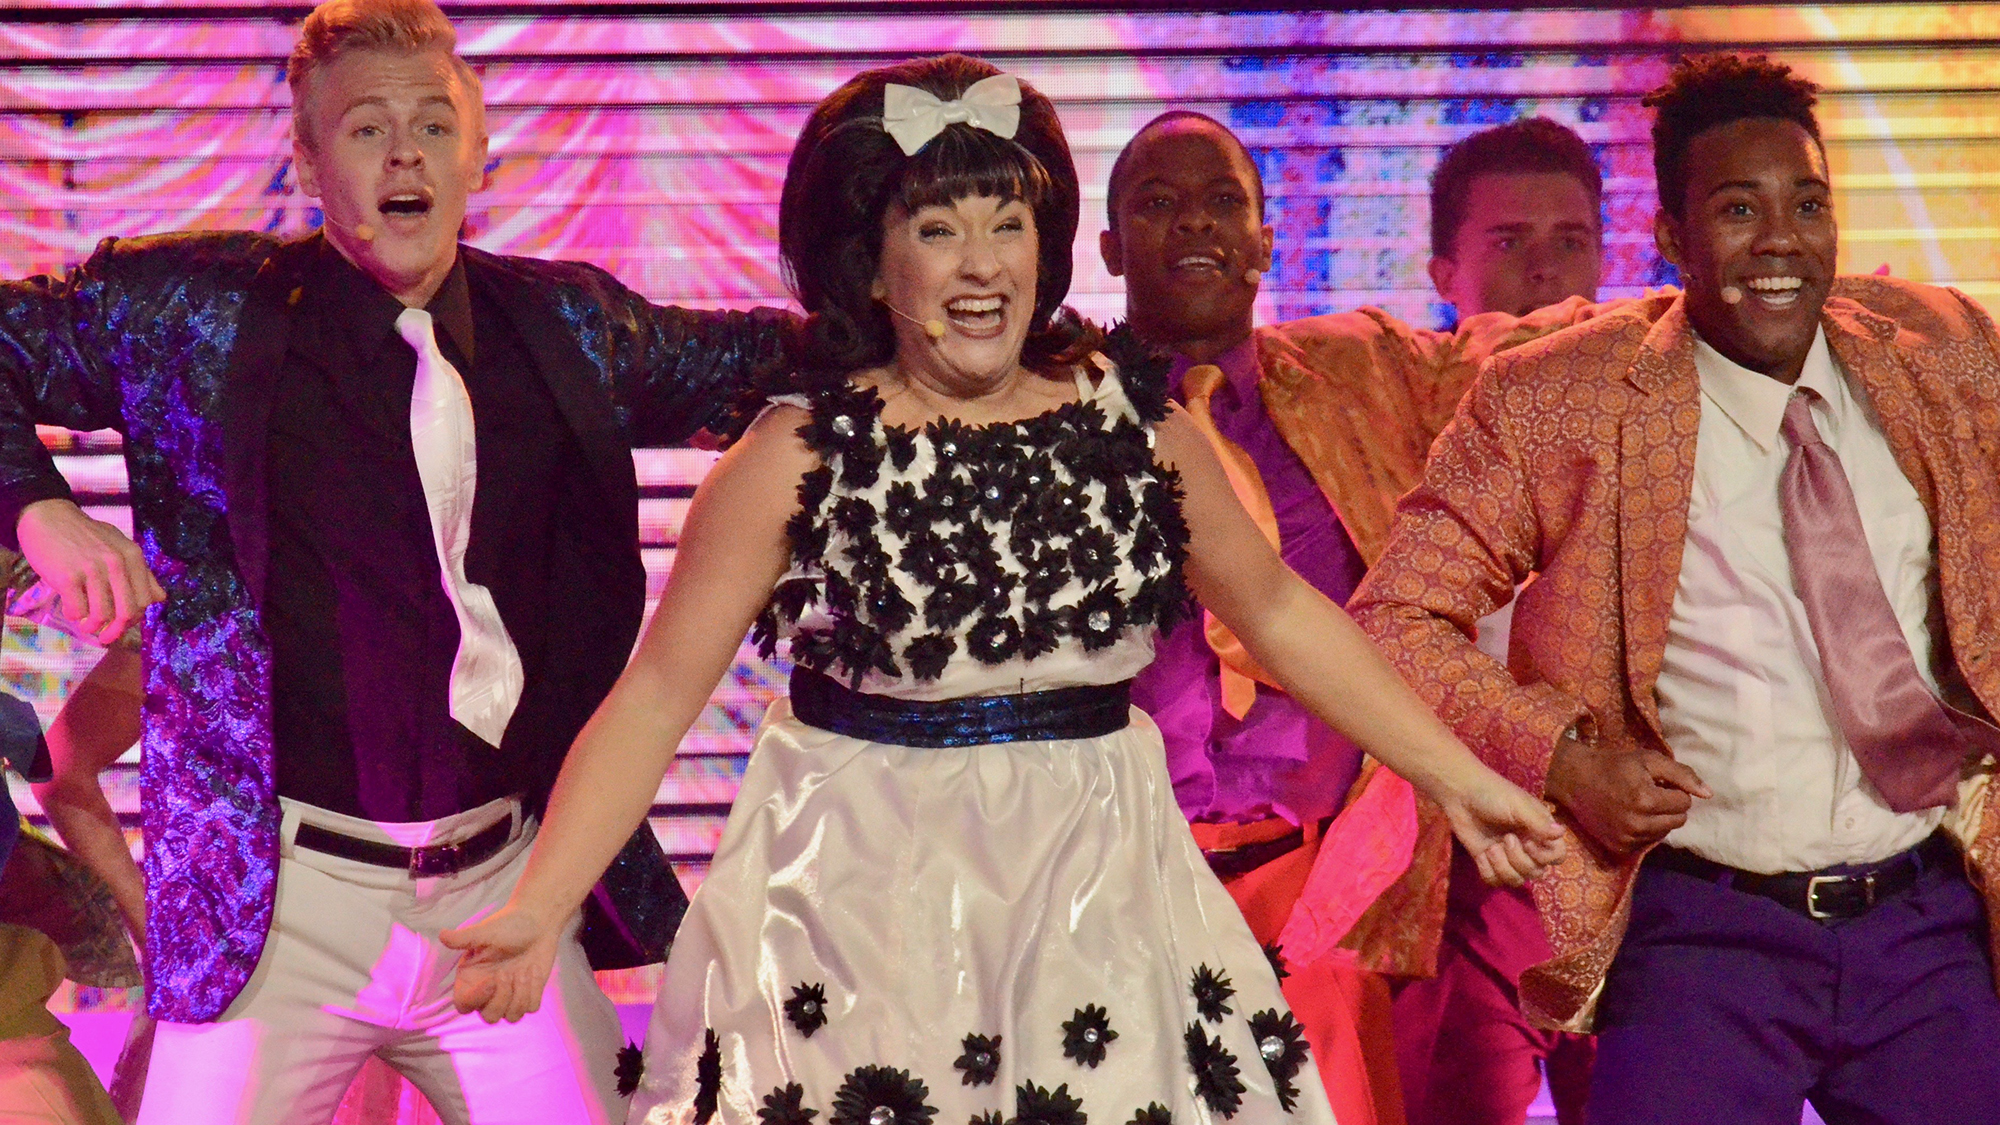 CruiseWorld, Day 2: Musical performances continue with 'Hairspray'